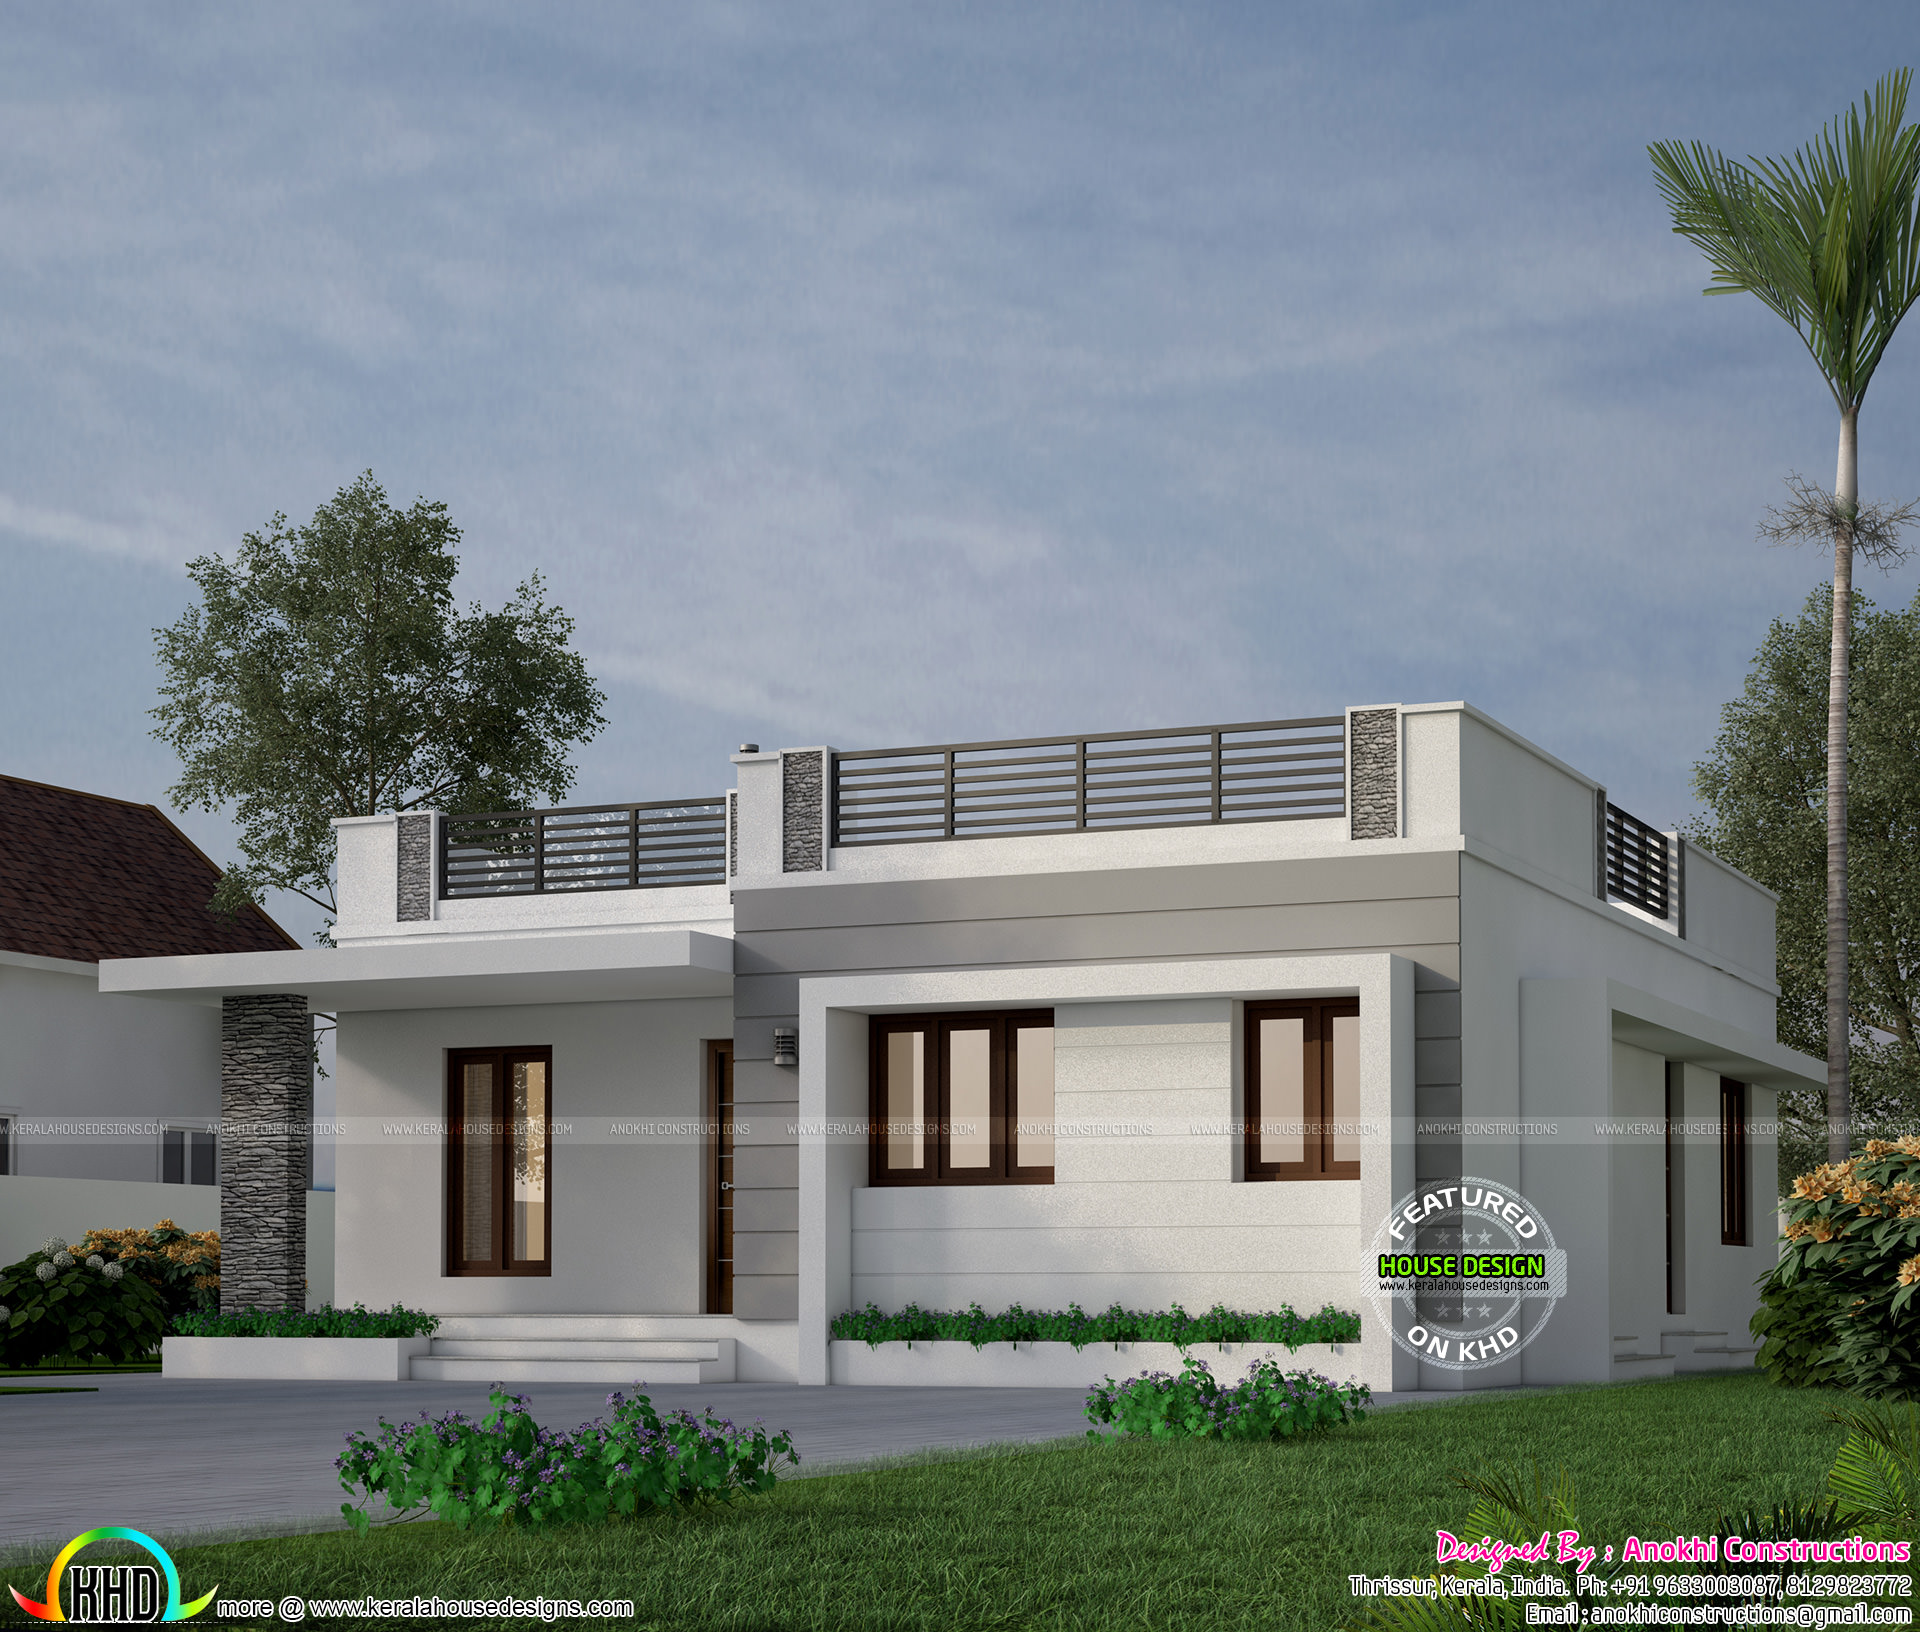 18 lakhs budget estimated house in kerala kerala home for Low cost house plans with estimate